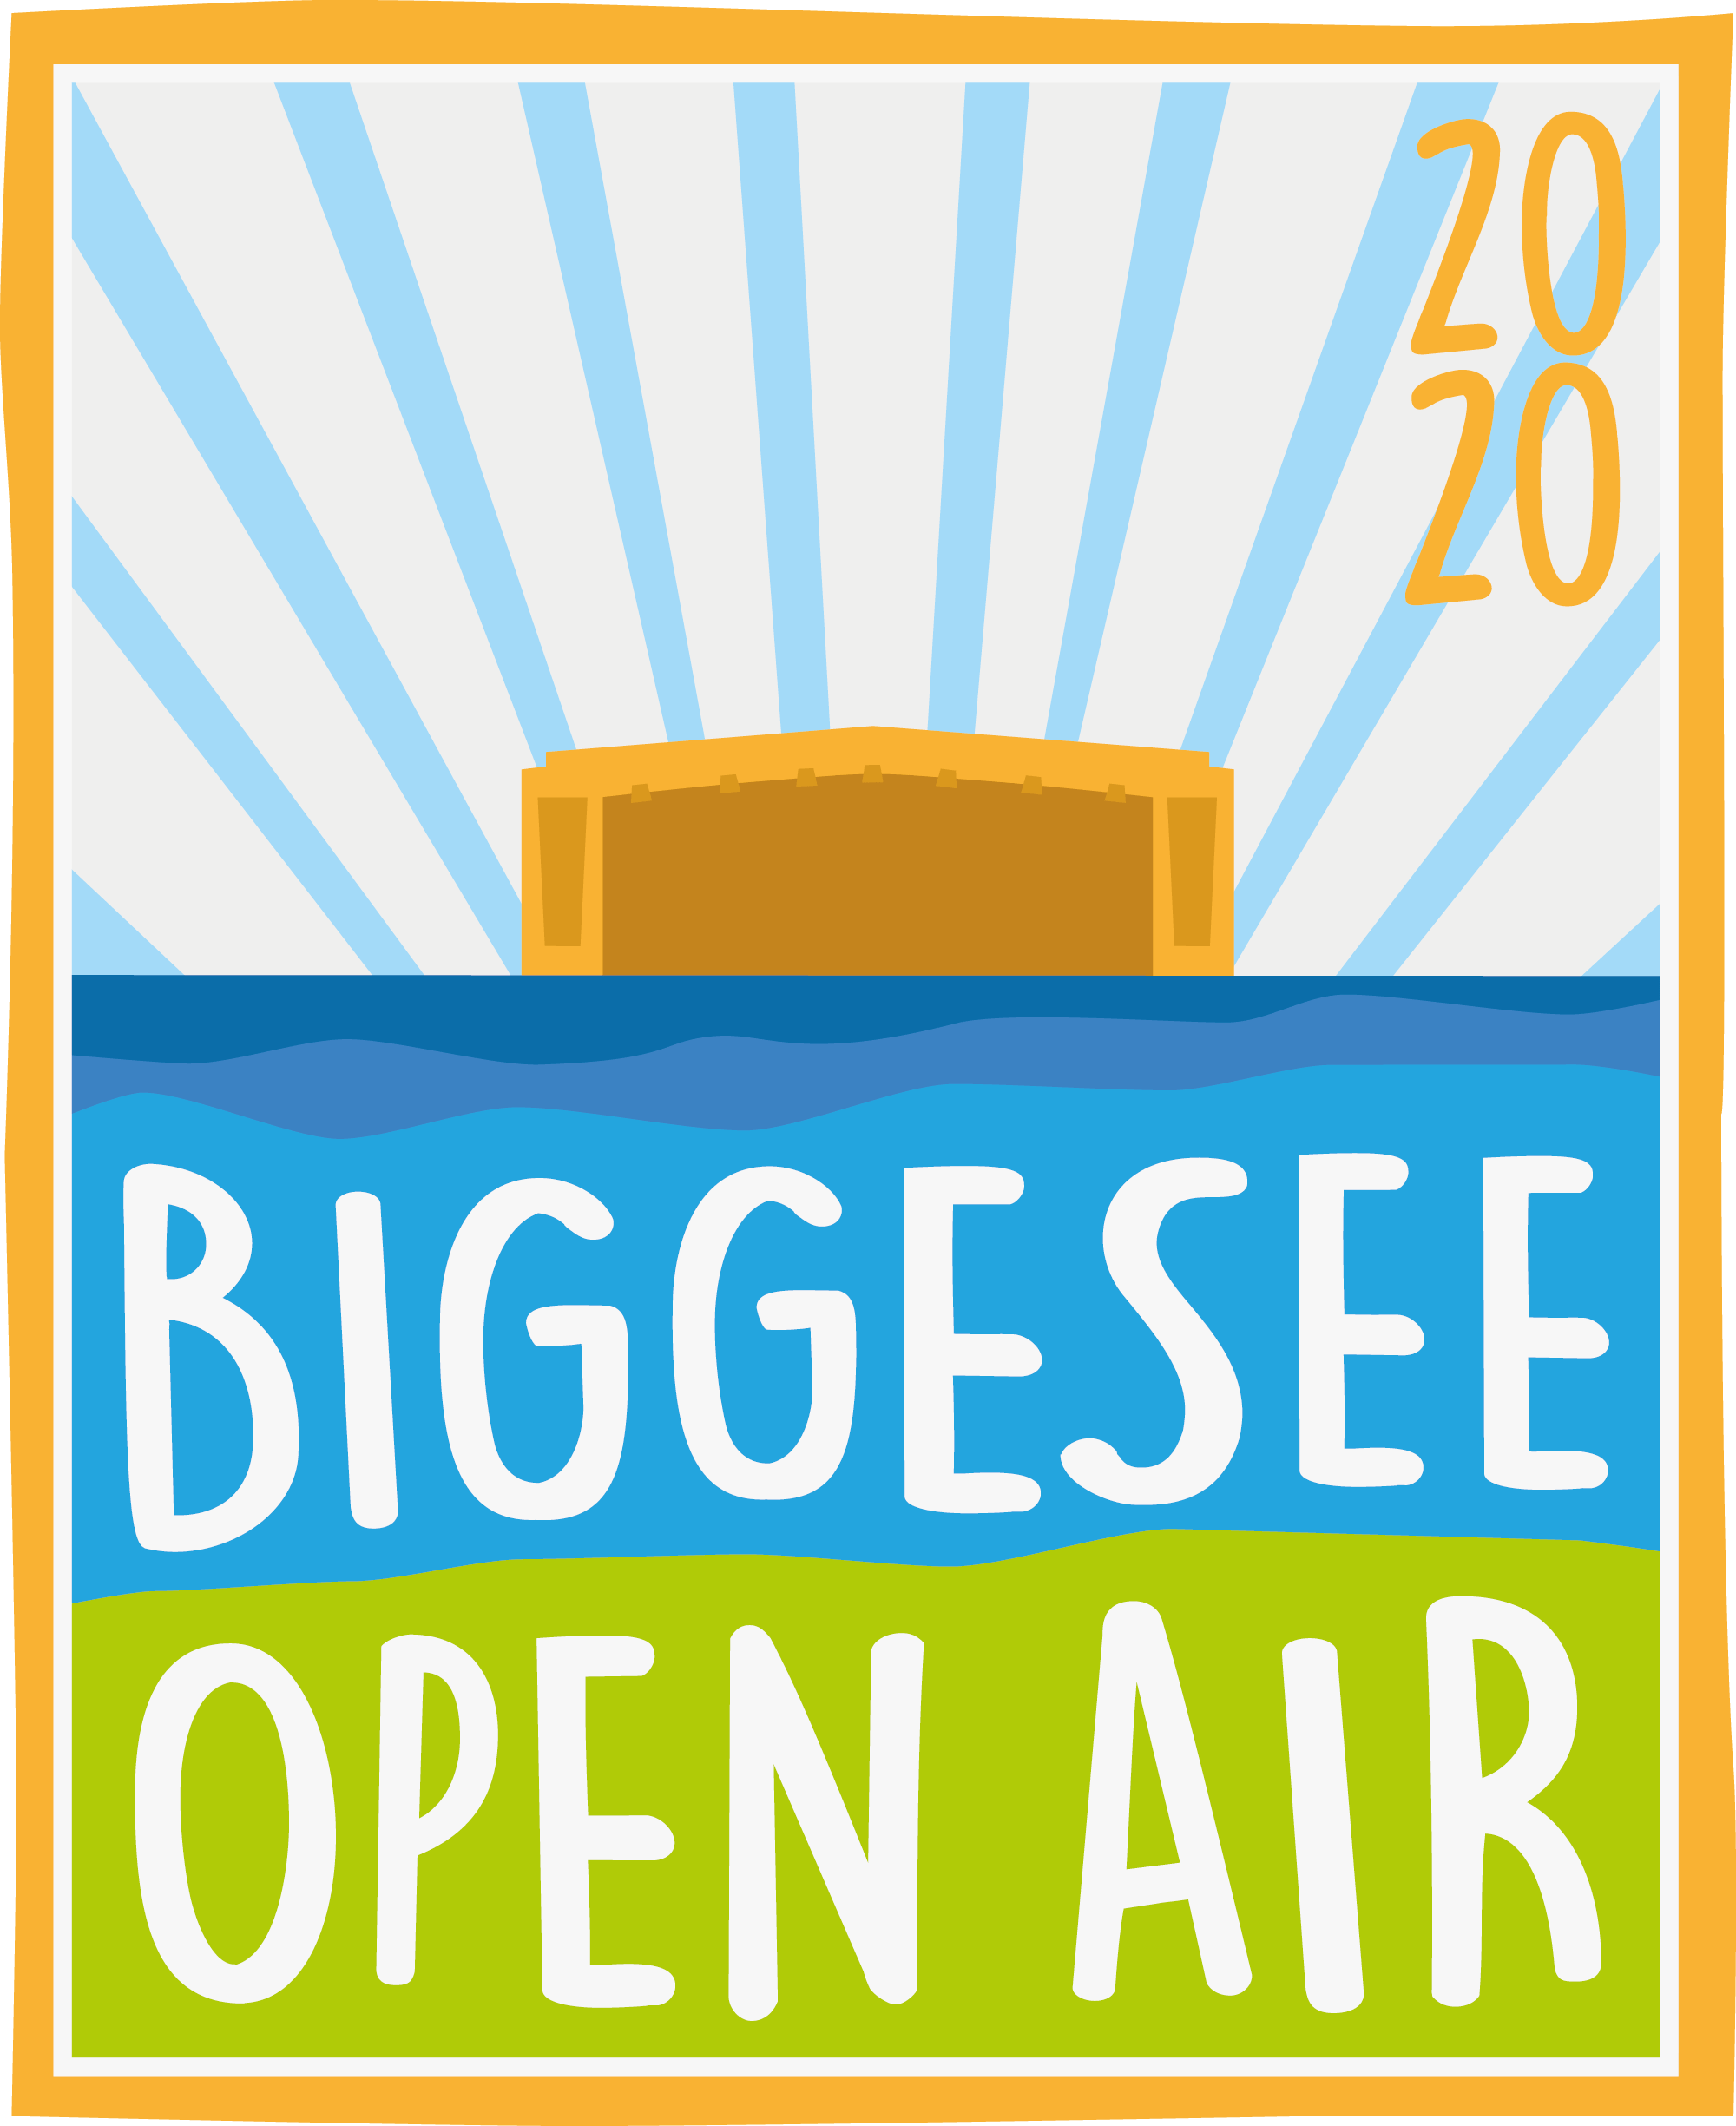 Biggesee Open Air 2020